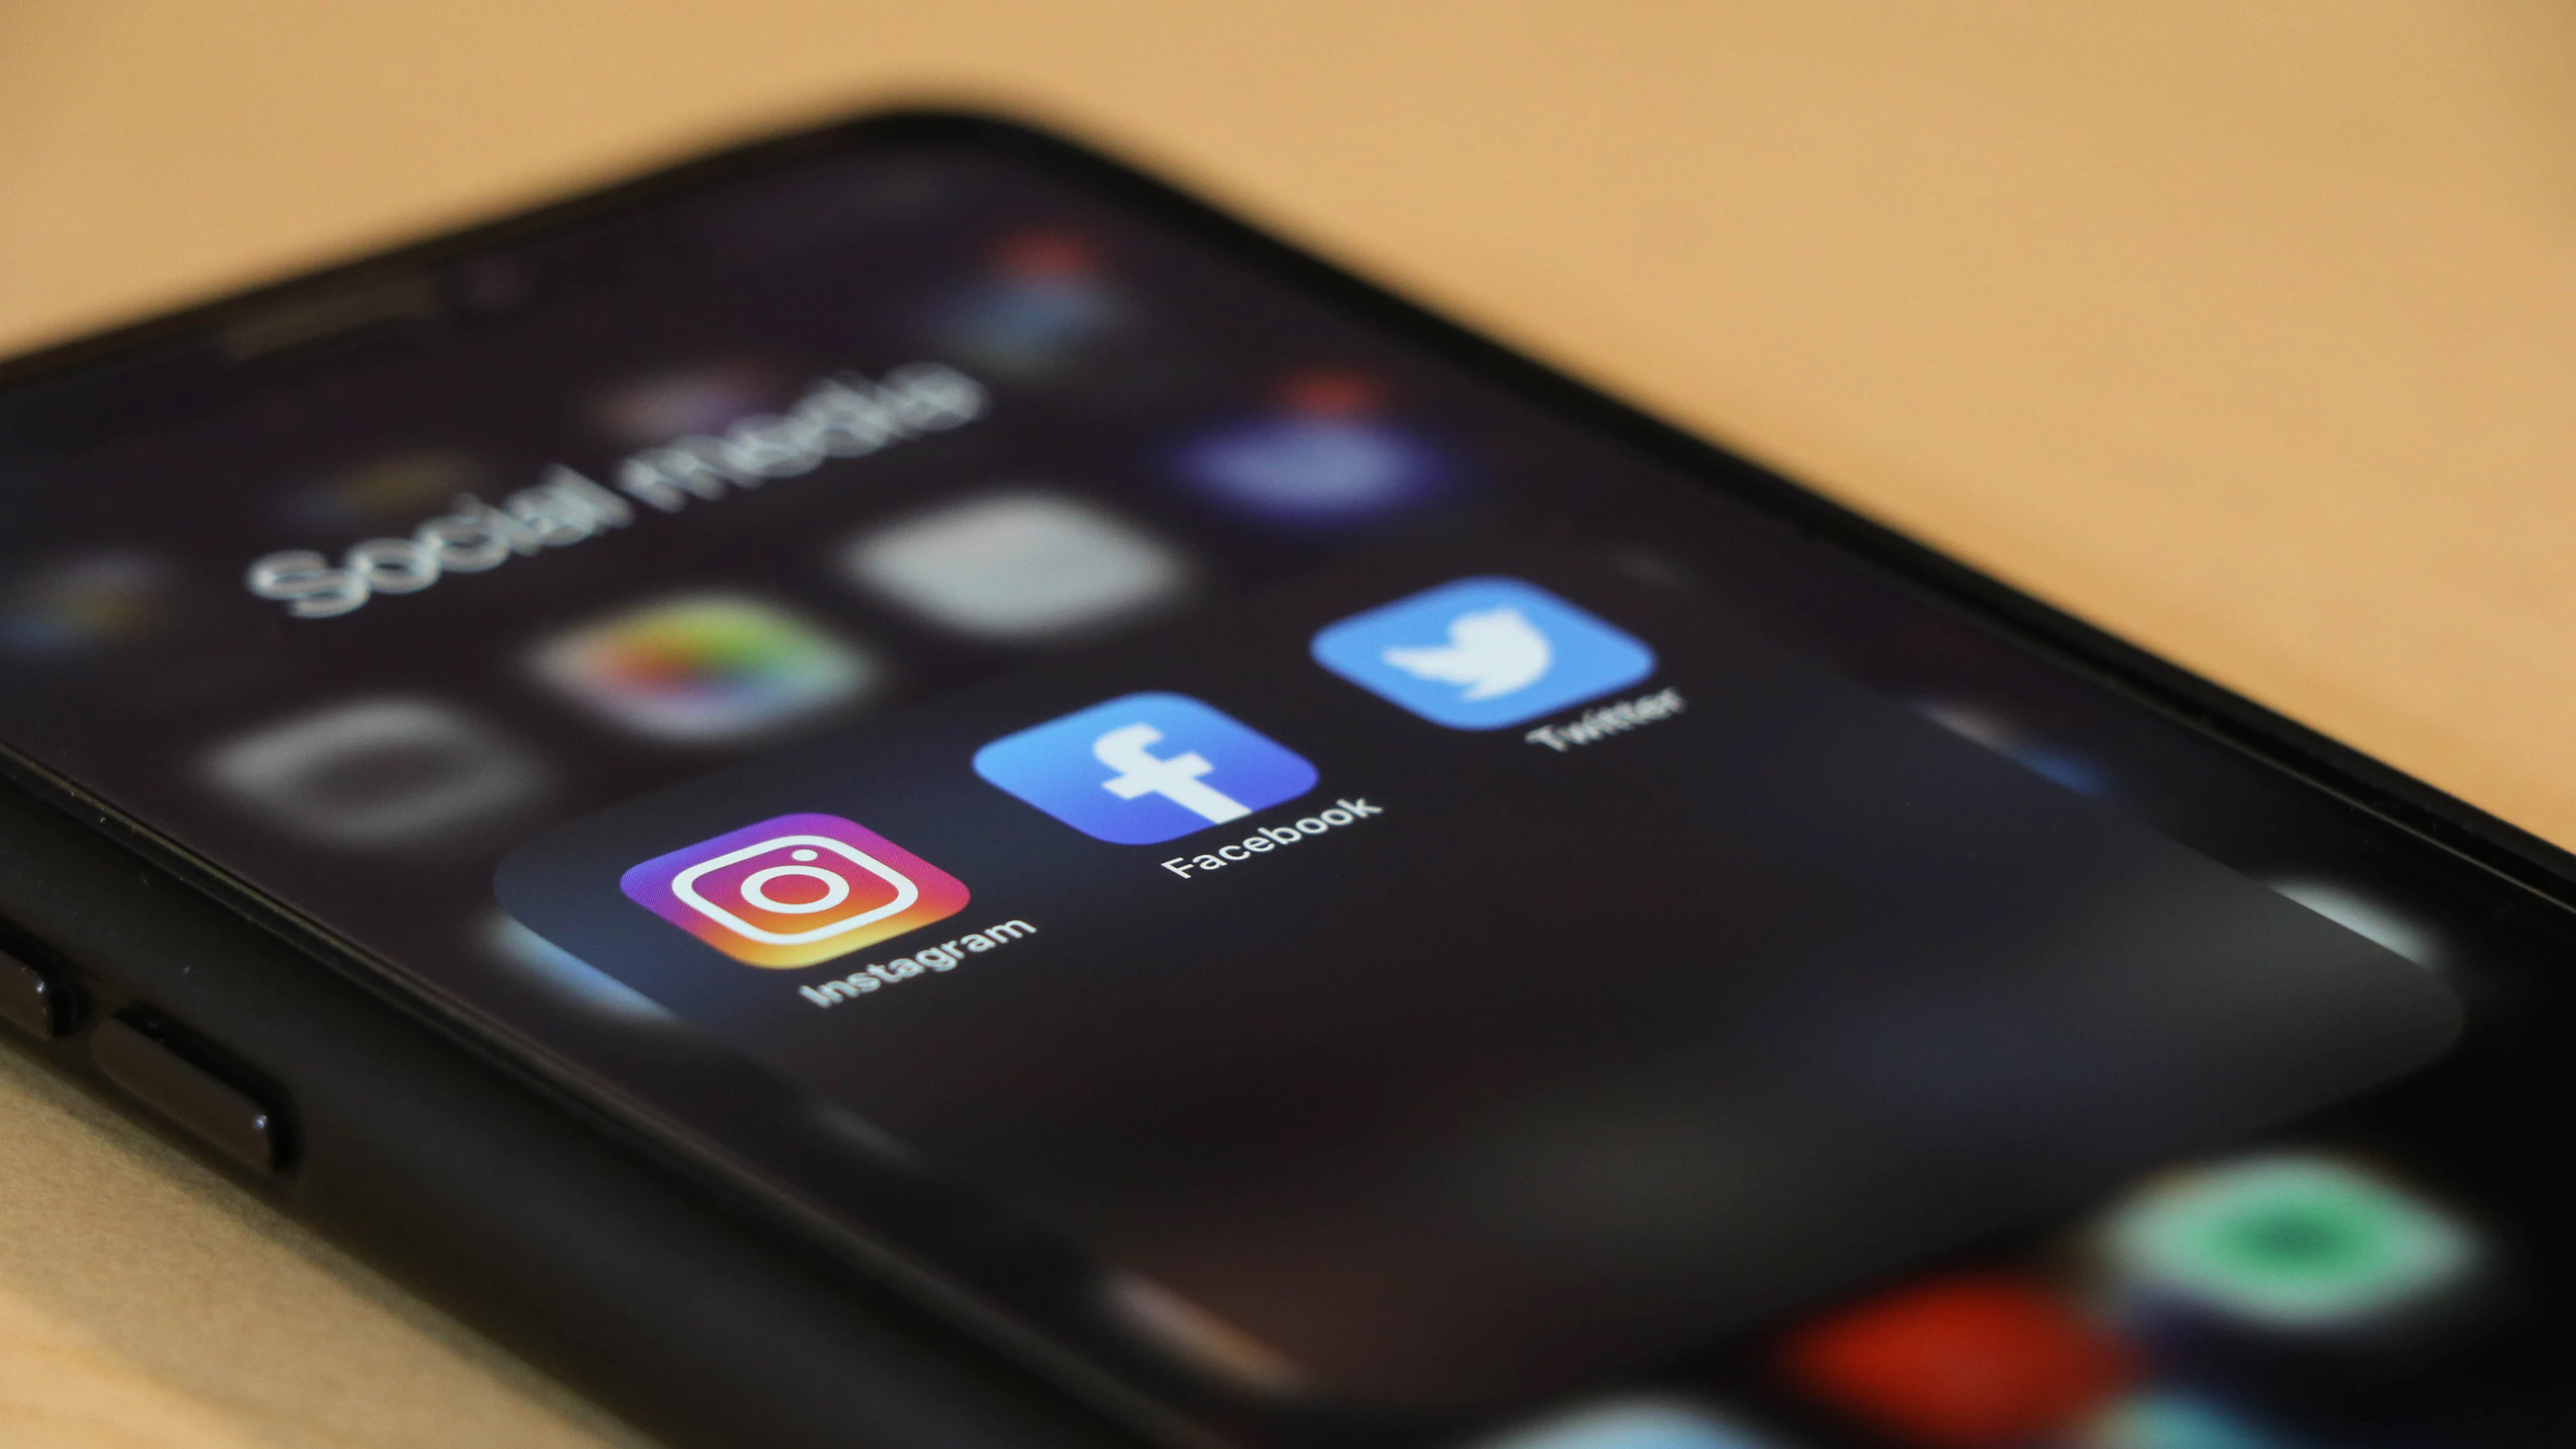 cell phone showing social media channels Instagram, Facebook and Twitter